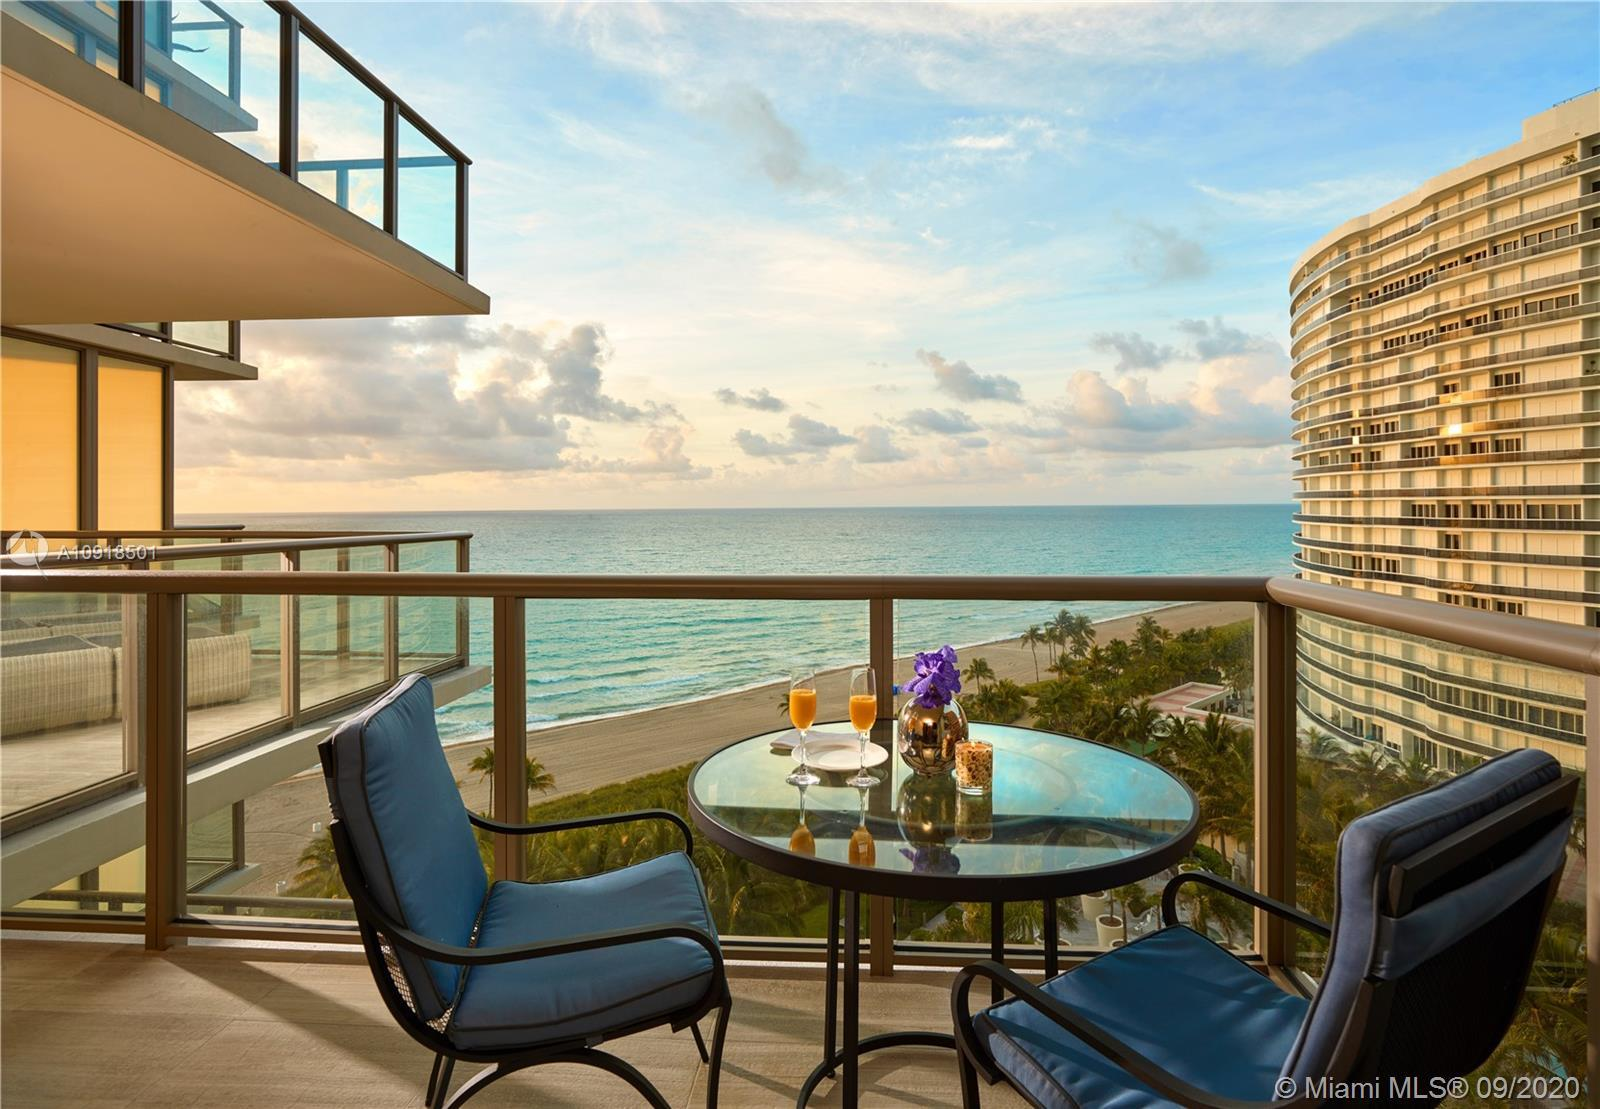 Perfect pied-a-terre in the world renown St. Regis Bal Harbour. Rarely available 02 line, this turnk